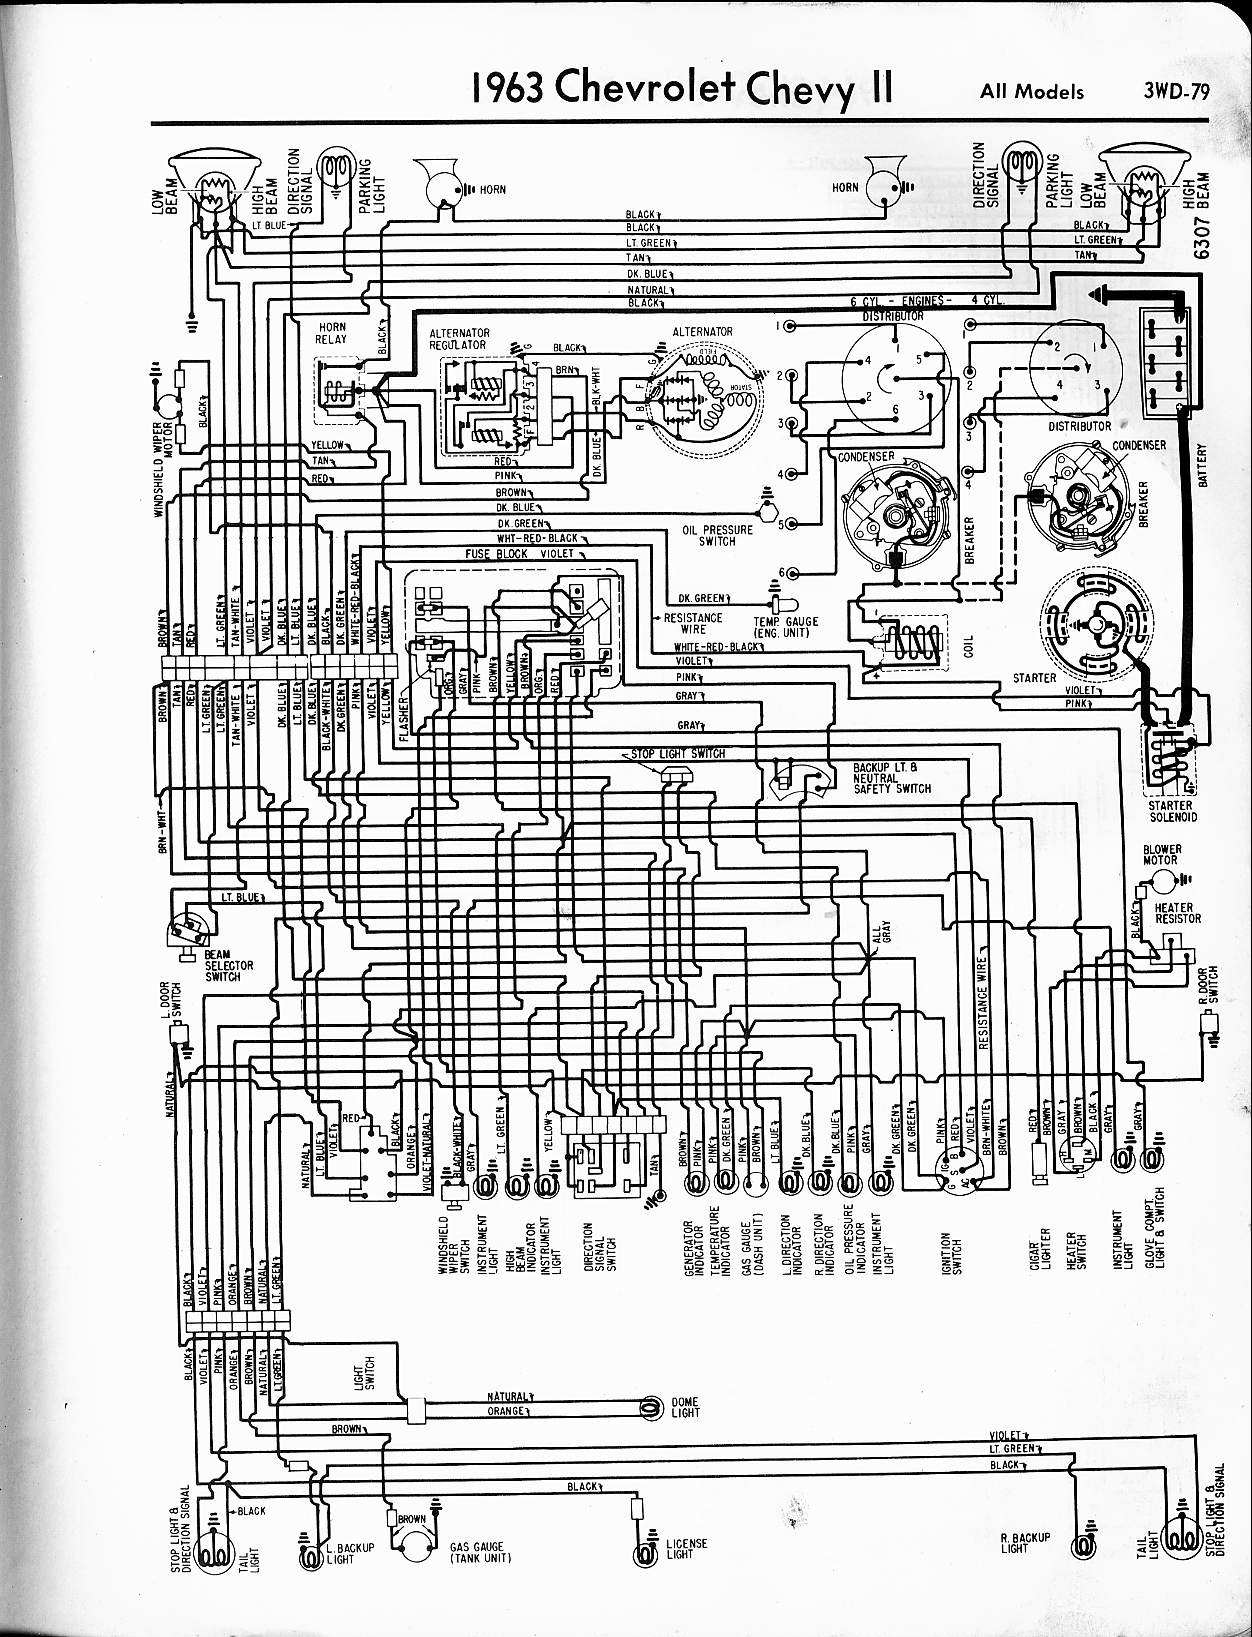 MWireChev63_3WD 079 57 65 chevy wiring diagrams 1970 chevelle dash wiring diagram at crackthecode.co